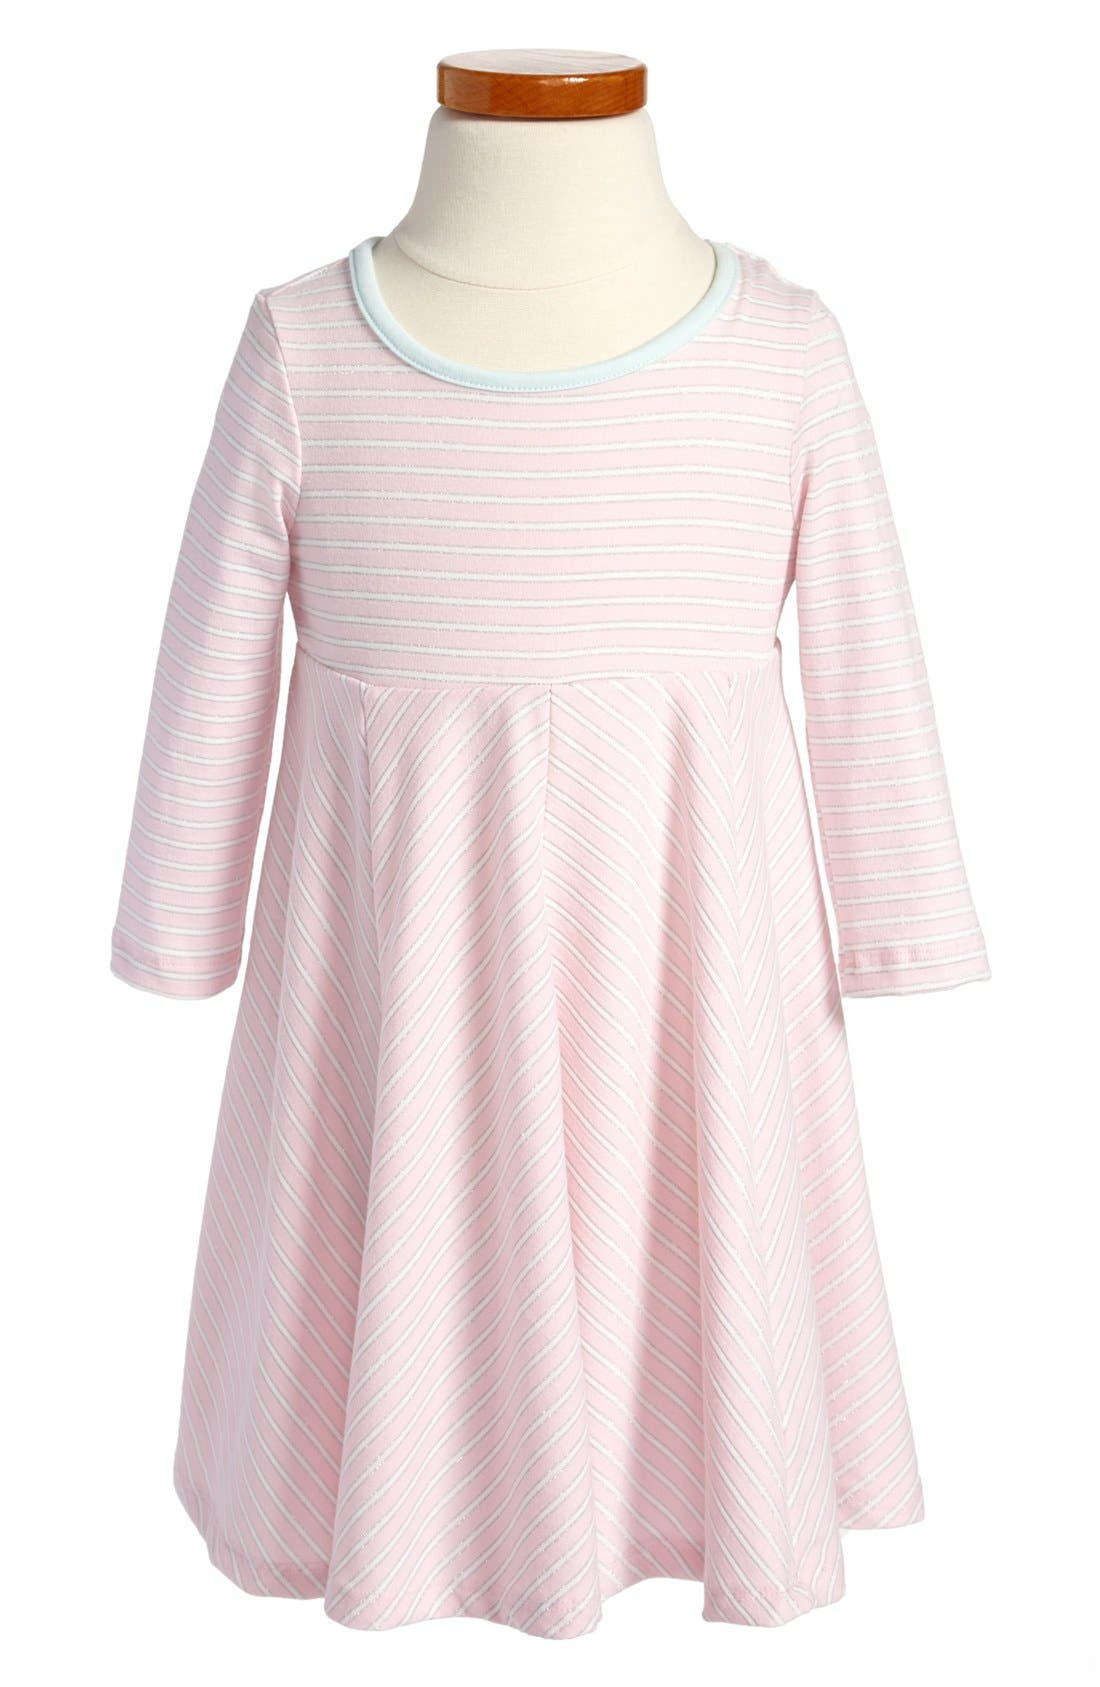 Alternate Image 1 Selected - Pippa & Julie Stripe Knit Dress (Toddler Girls)